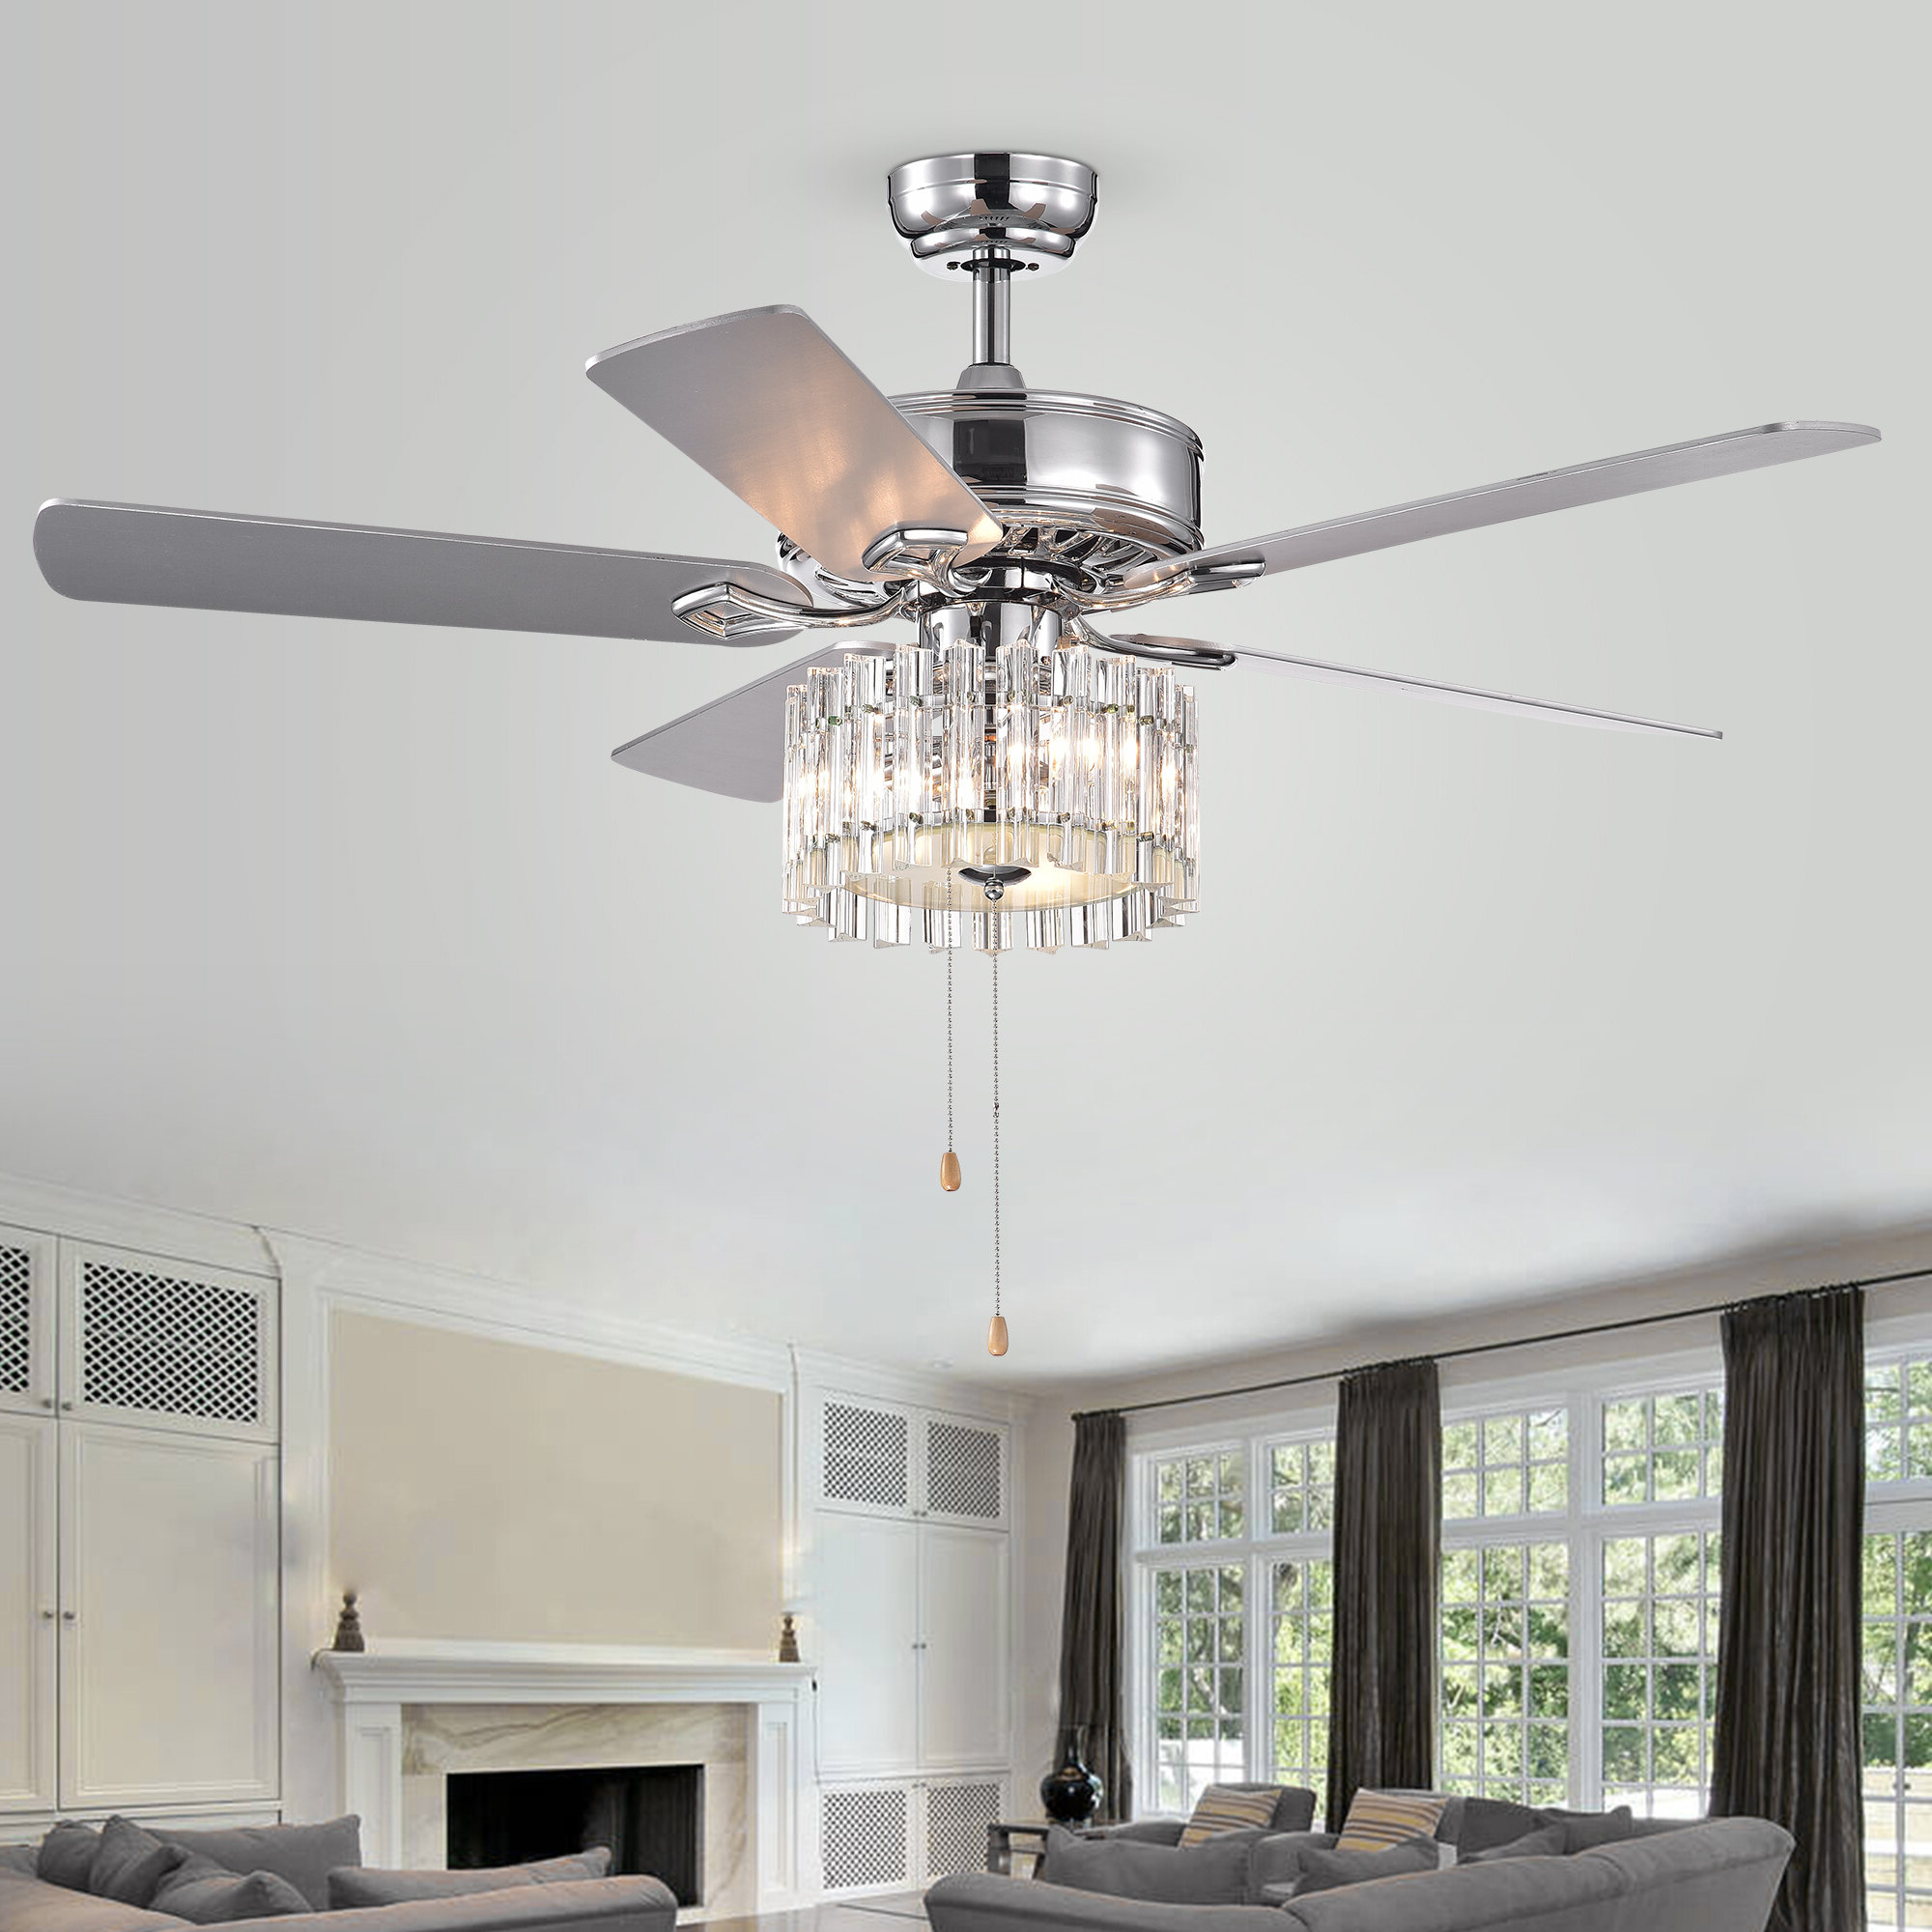 Njie Caged Crystal 5 Blade Ceiling Fans With Regard To Current Clark 5 Blade Ceiling Fan, Light Kit Included (View 14 of 20)